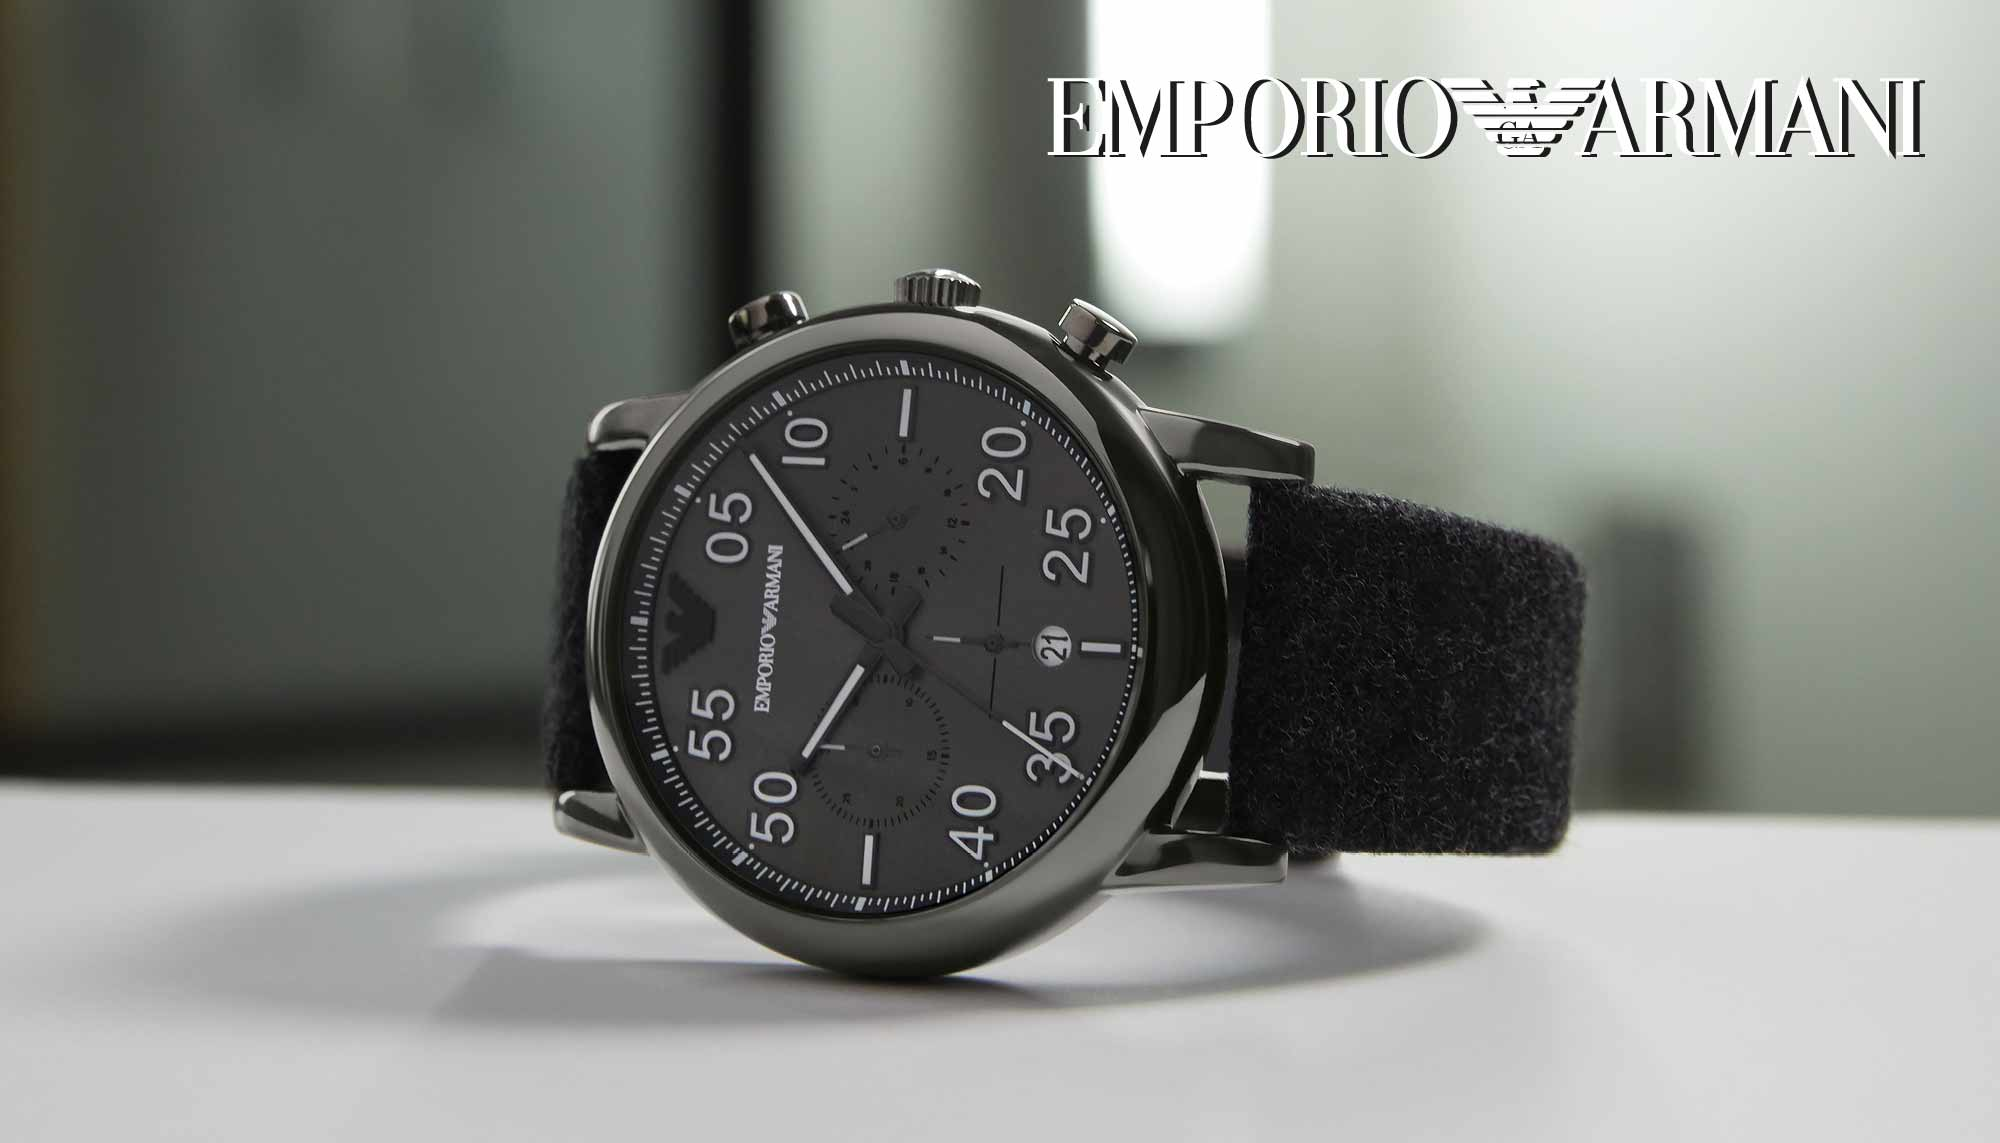 Emporio Armani Orologi - Casavola Noci - Marketing